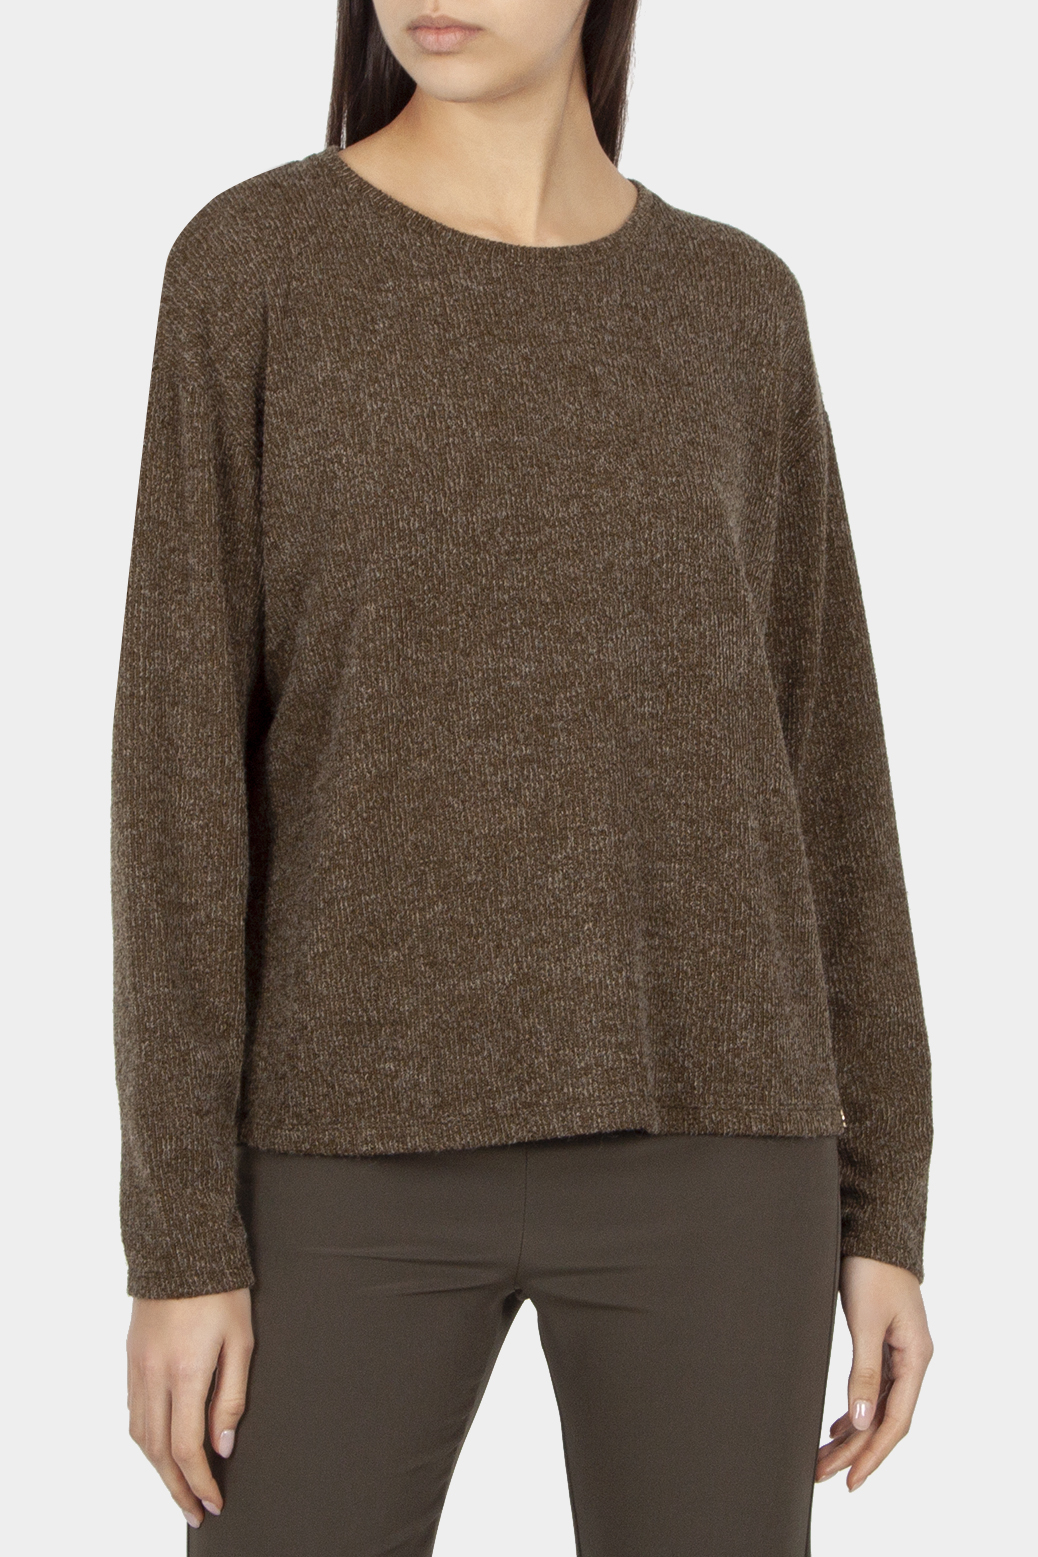 Sweater with back zipper